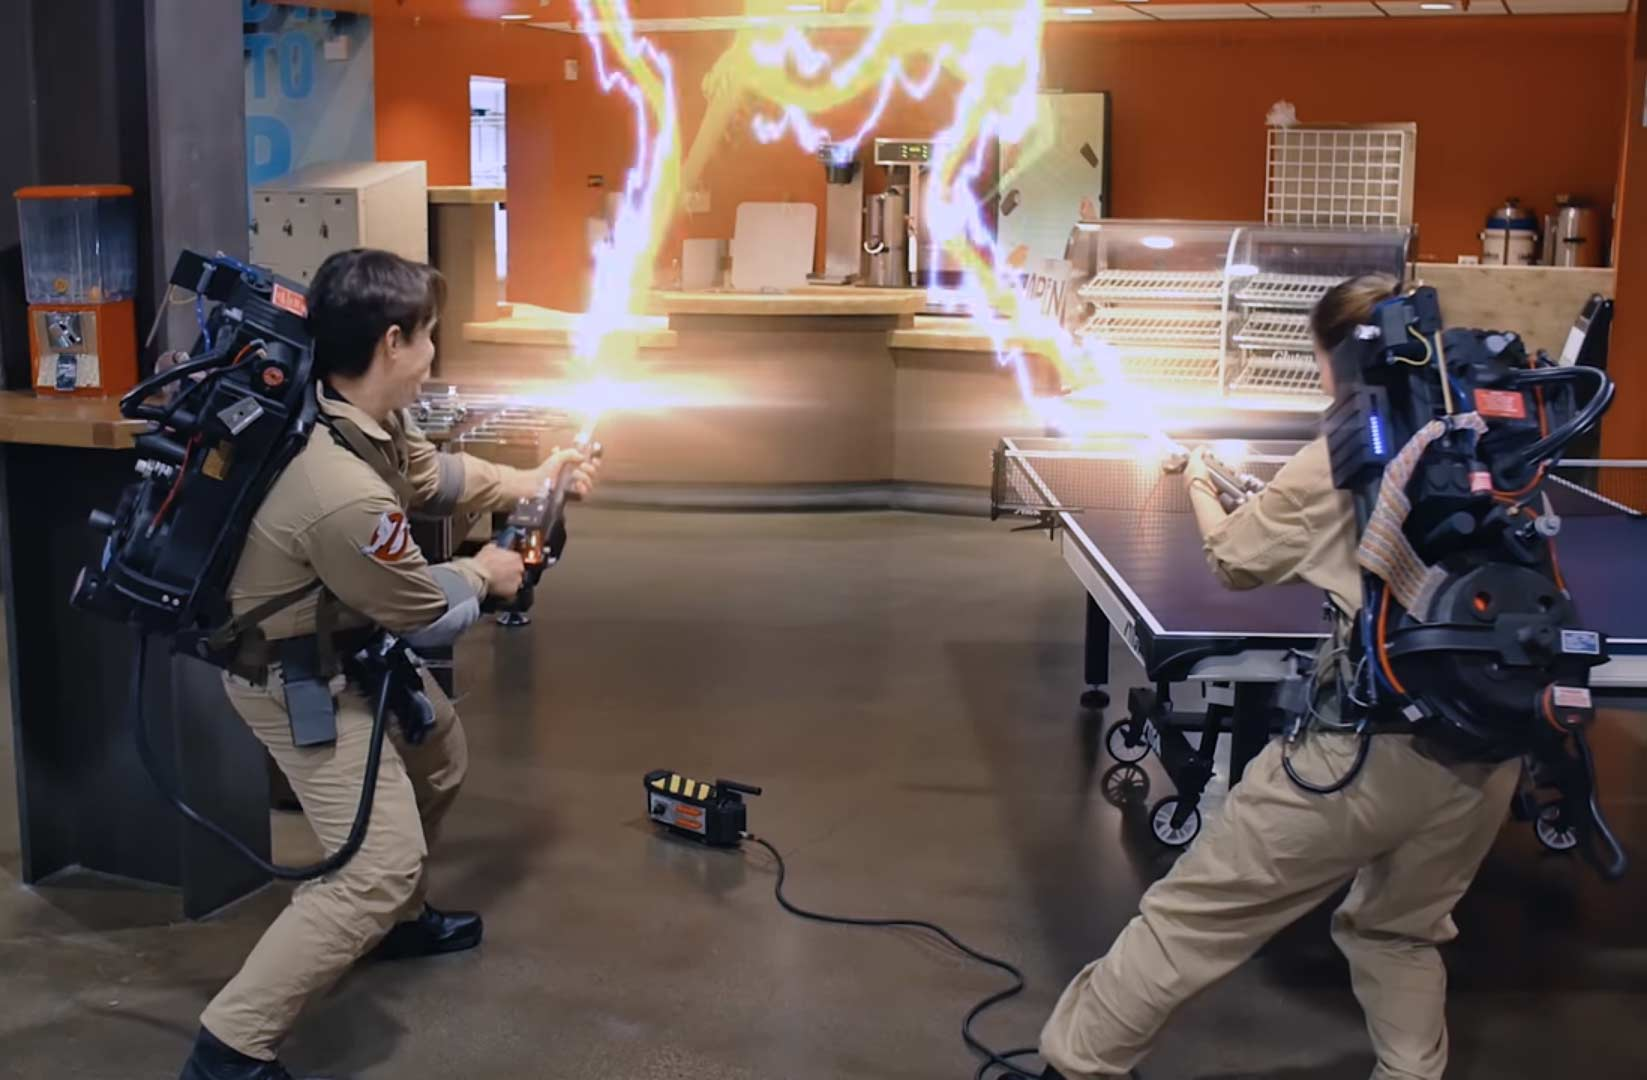 Fan Film Ghostbusters Station 6 Episode 1 Now Streaming